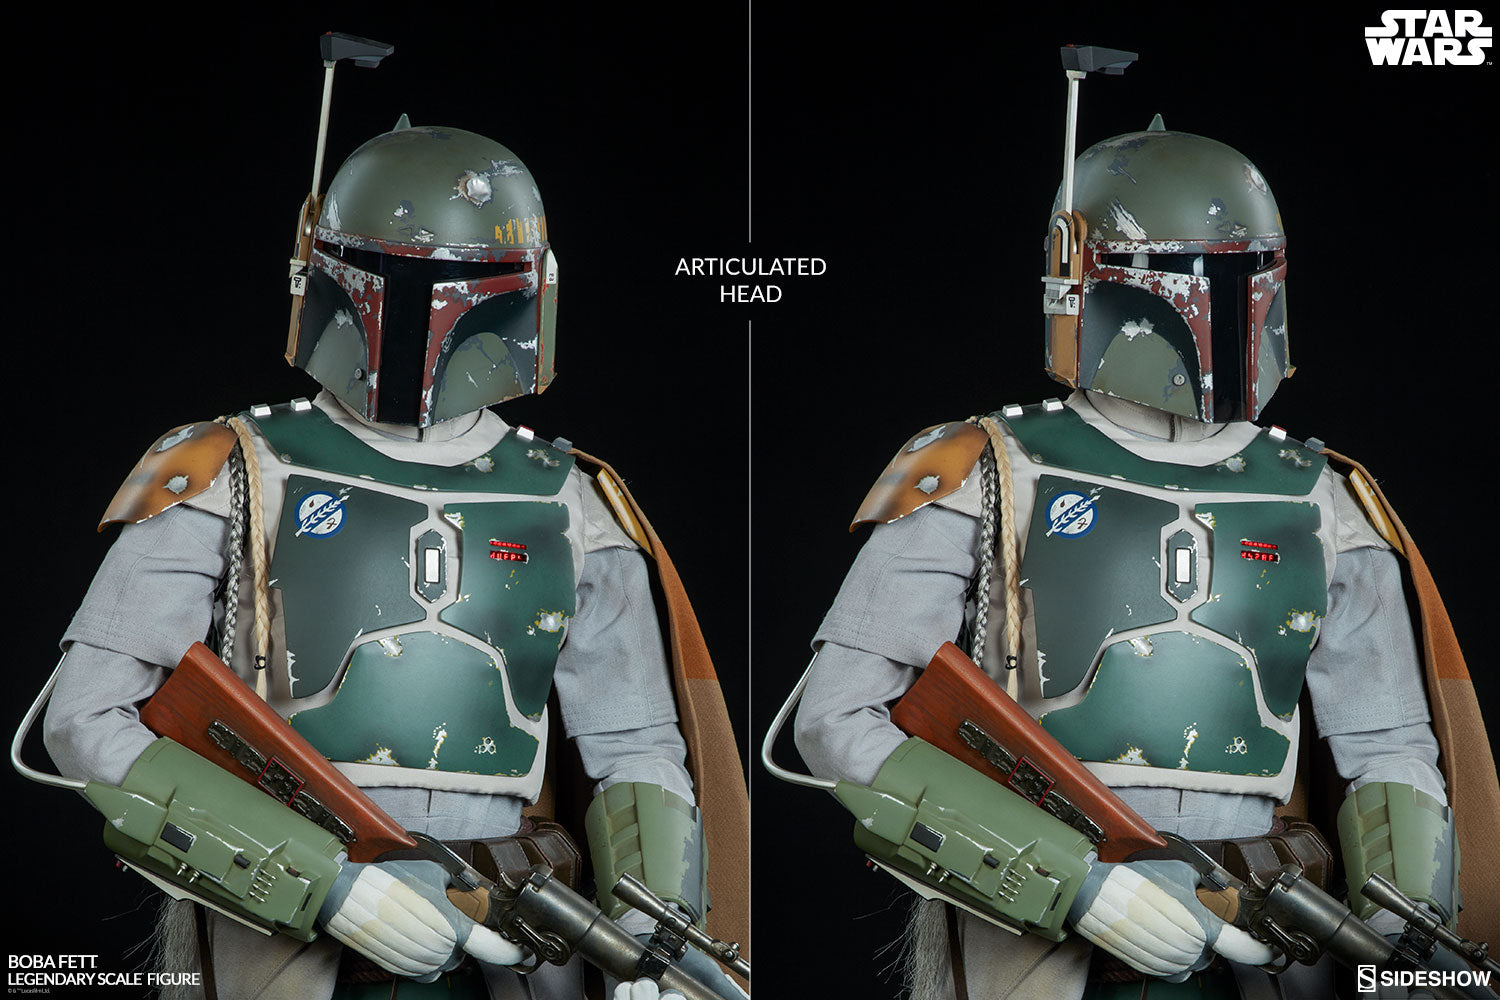 Boba Fett Legendary Scale Figure